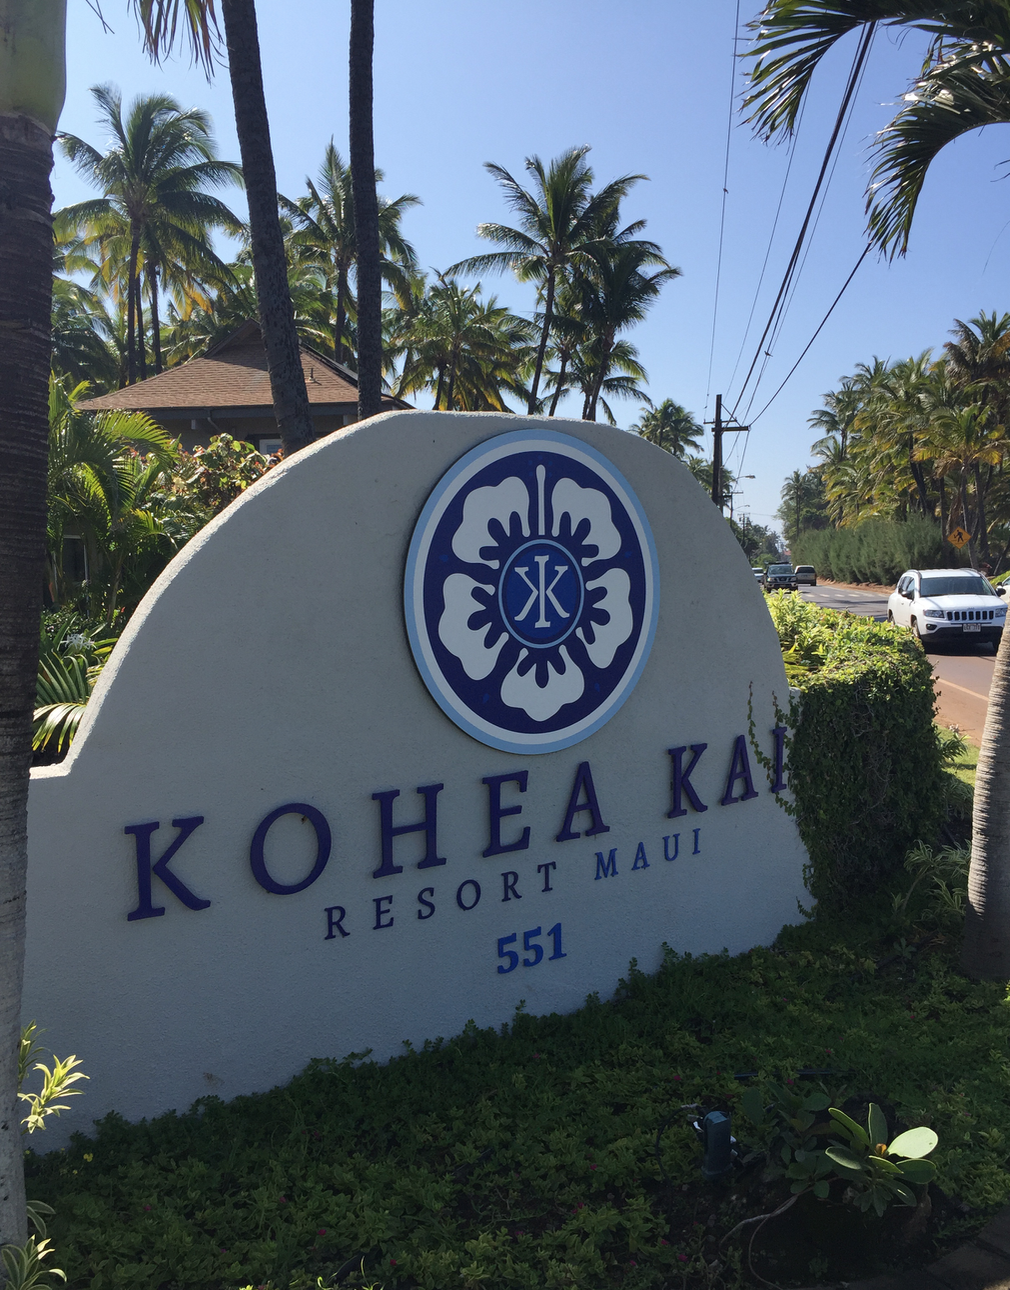 Kohea Kai Resort - Kihei, Maui - How To Spend 48 Hours On Maui